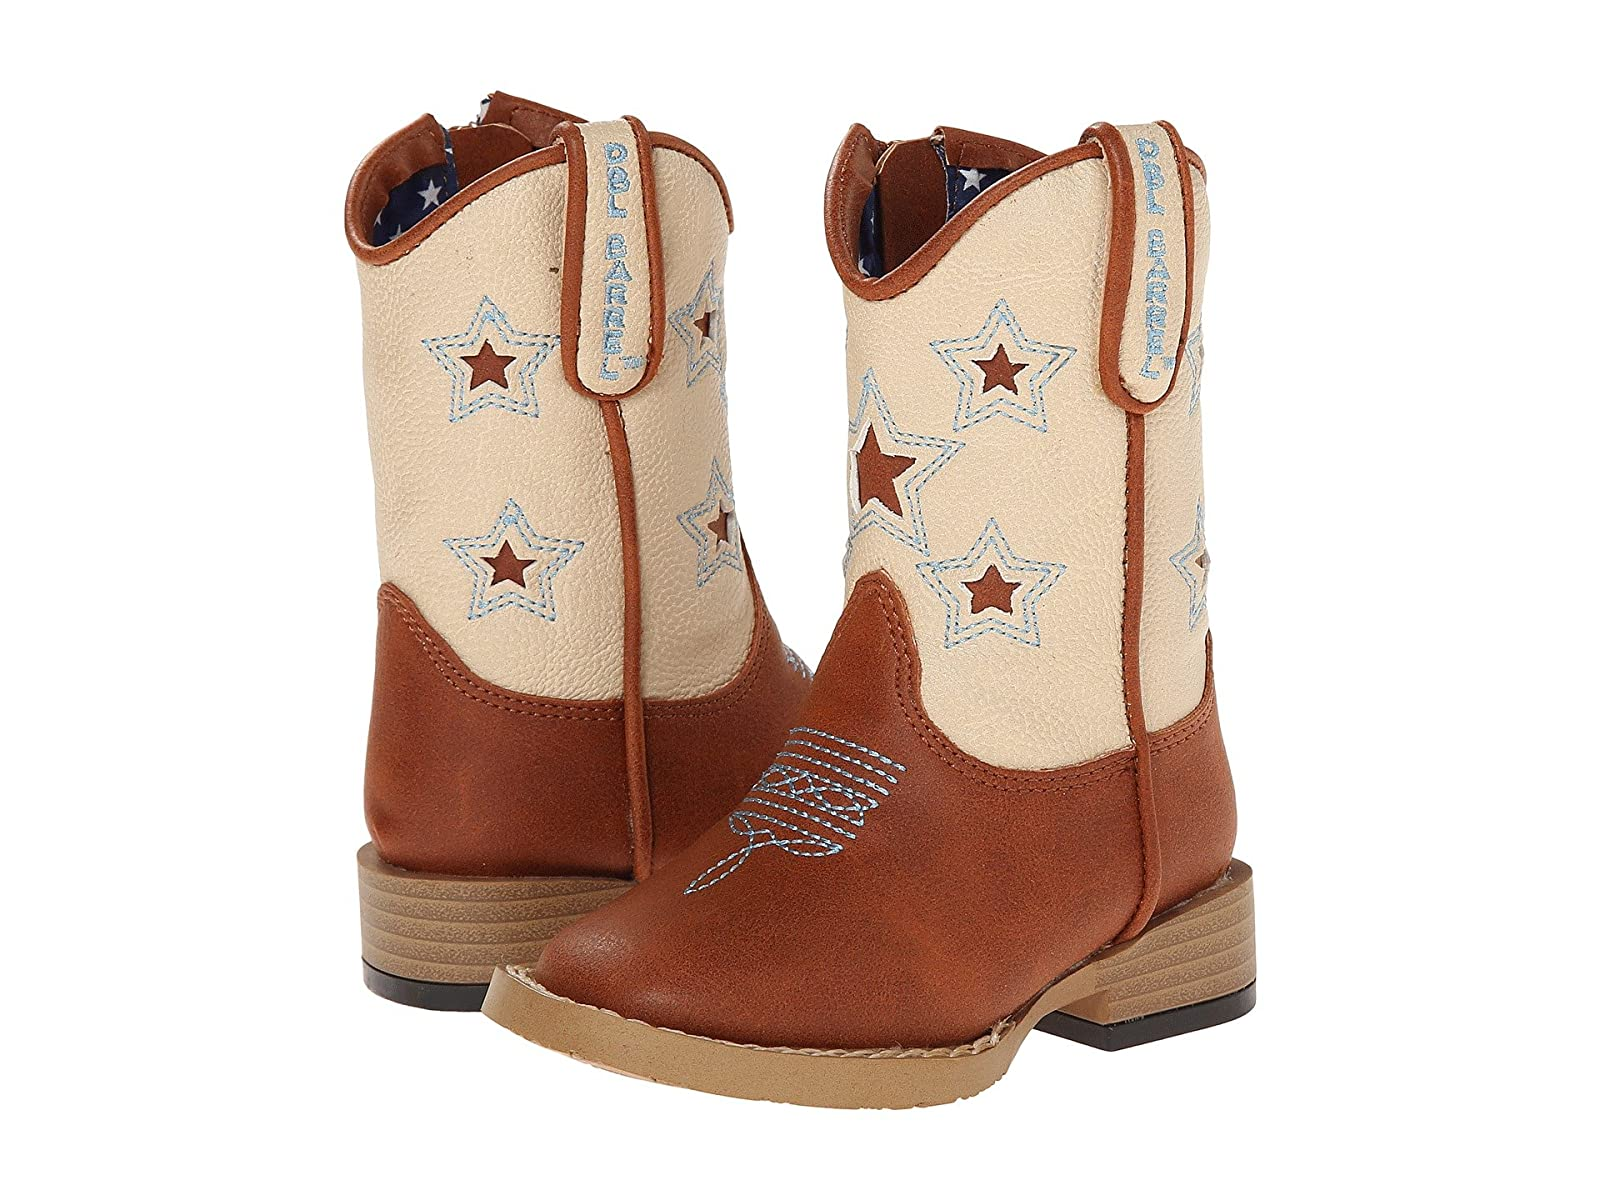 M&F Western Kids Lone Star (Toddler)Affordable and distinctive shoes